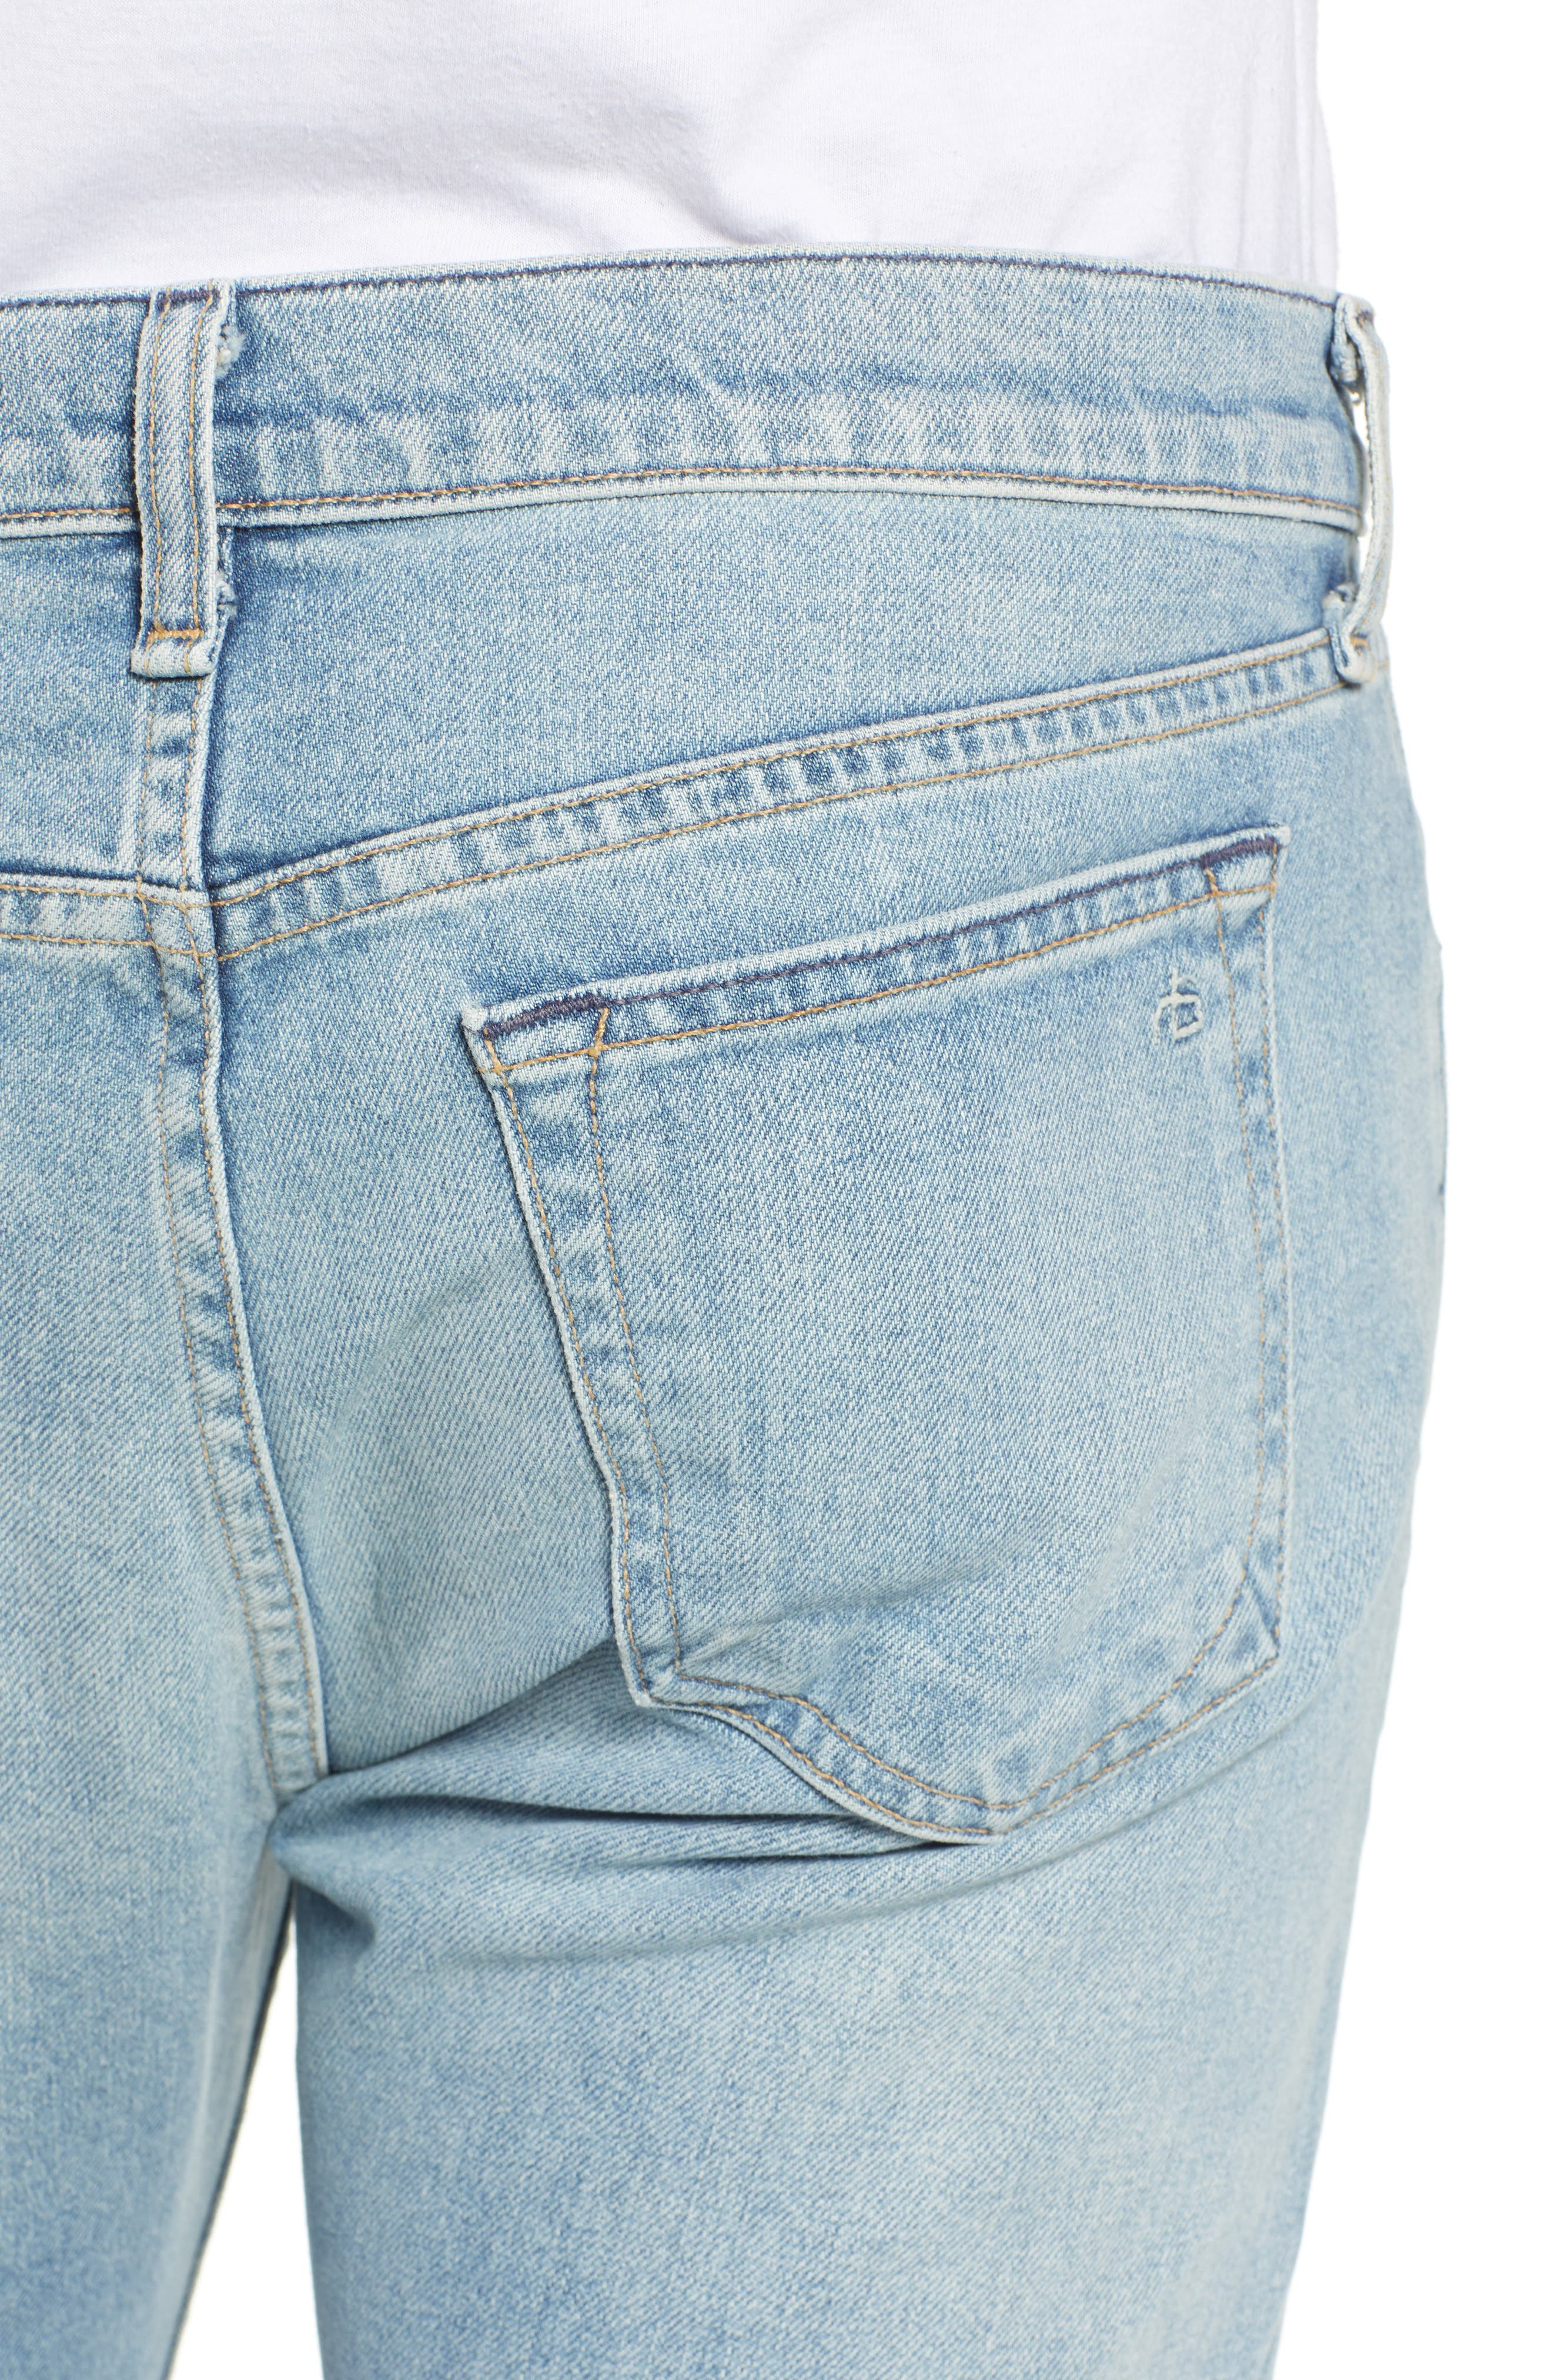 Fit 2 Slim Fit Jeans,                             Alternate thumbnail 4, color,                             JAMIE WITH HOLES